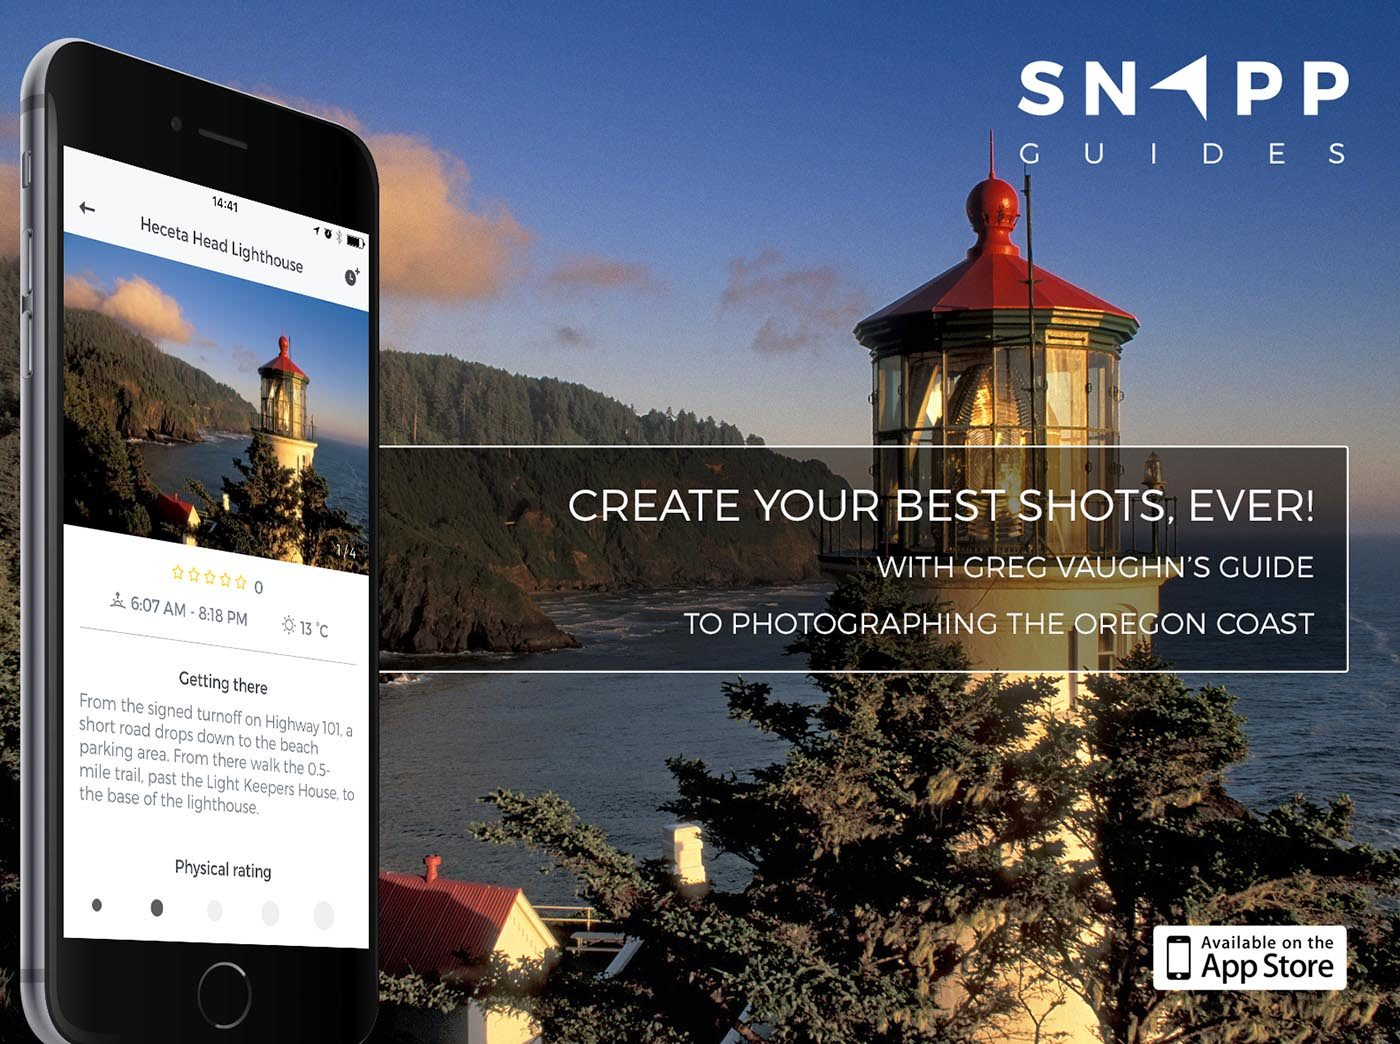 Snapp Guide to Photographing the Oregon Coast